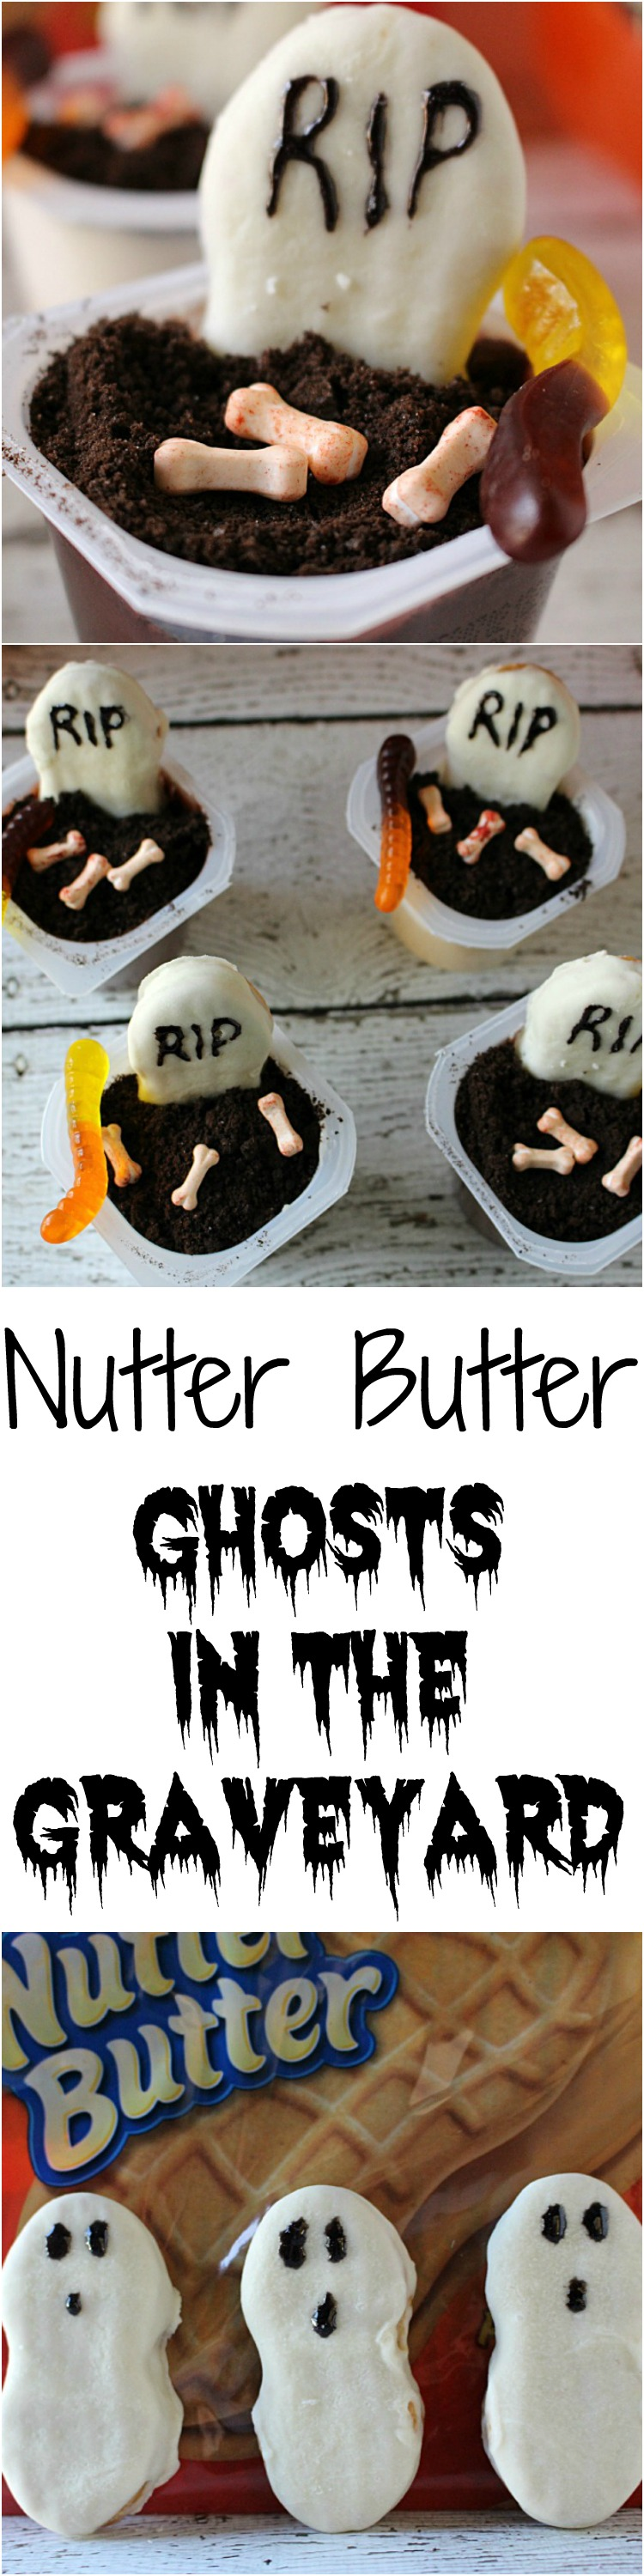 Nutter butter Ghosts in the Graveyard - a delicious spooktacular treat!